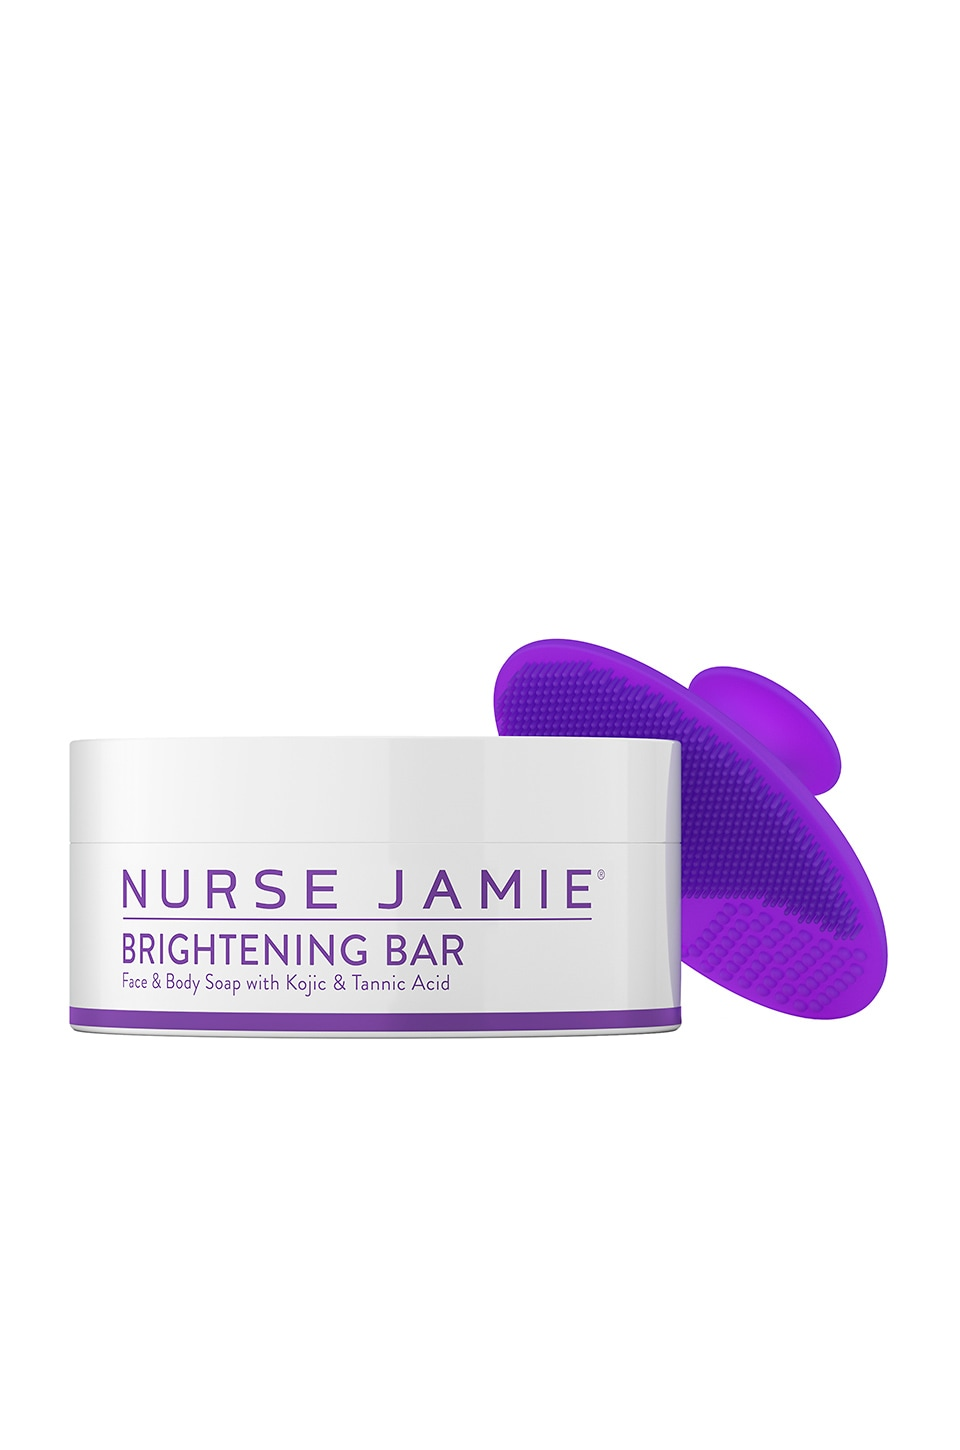 Nurse Jamie Brightening Bar & Exfolibrush Silicone Facial Brush